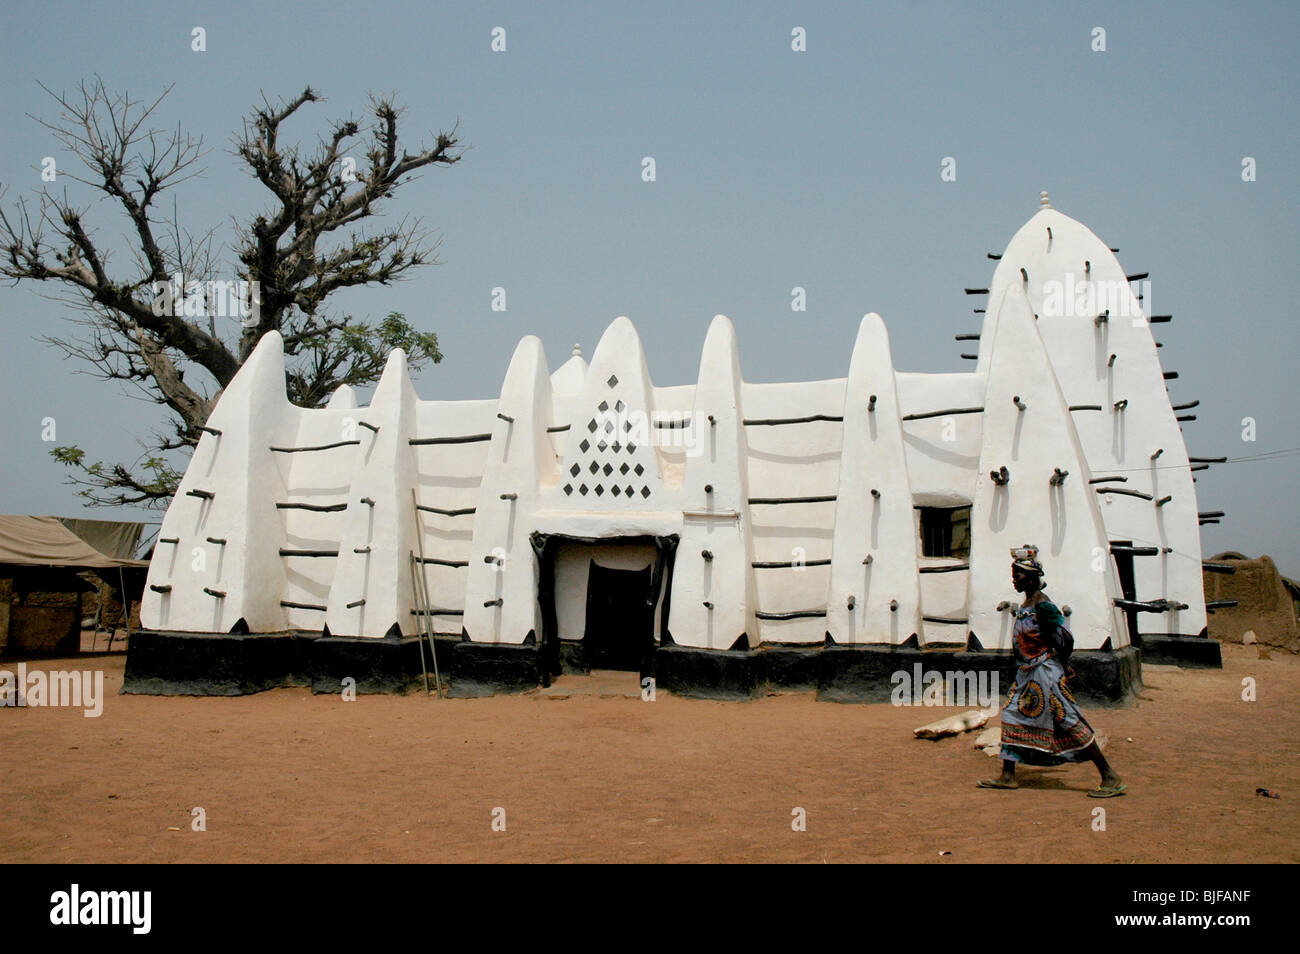 Mosque, Northern Ghana, West Africa, Africa - Stock Image